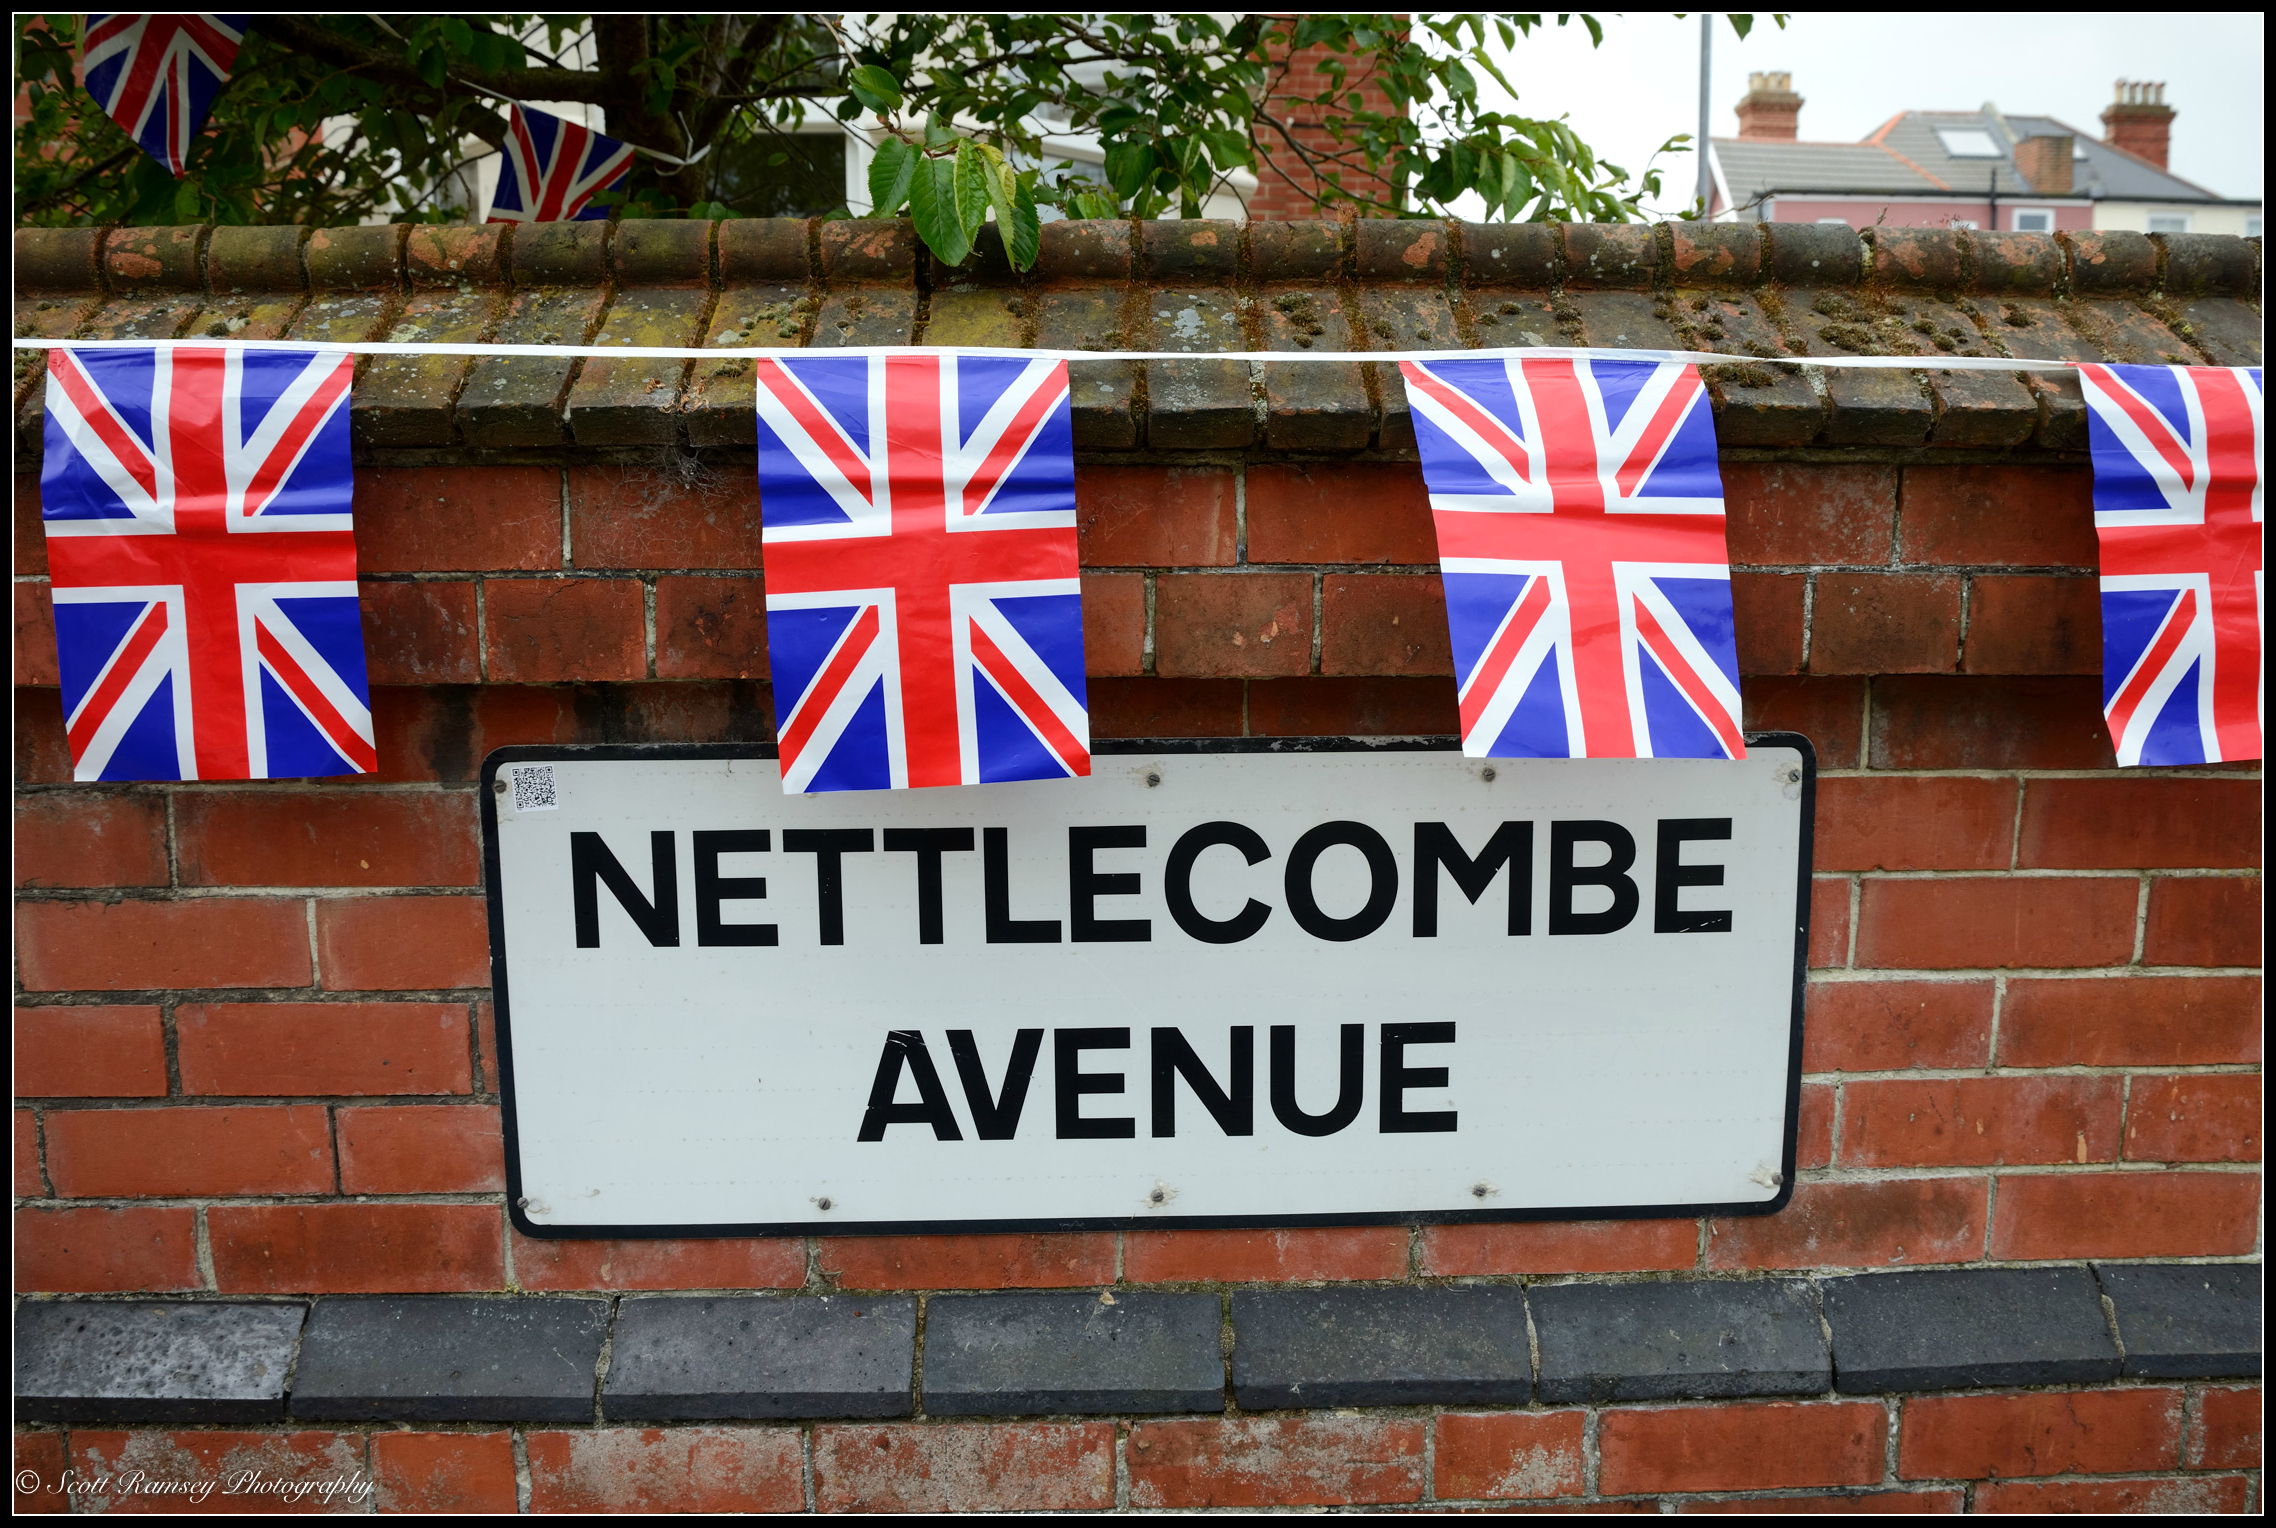 Unionjack flags hang from a garden wall andabove the Nettlecombe Avenue road sign in Southsea, Portsmouth. © Scott Ramsey Photography.